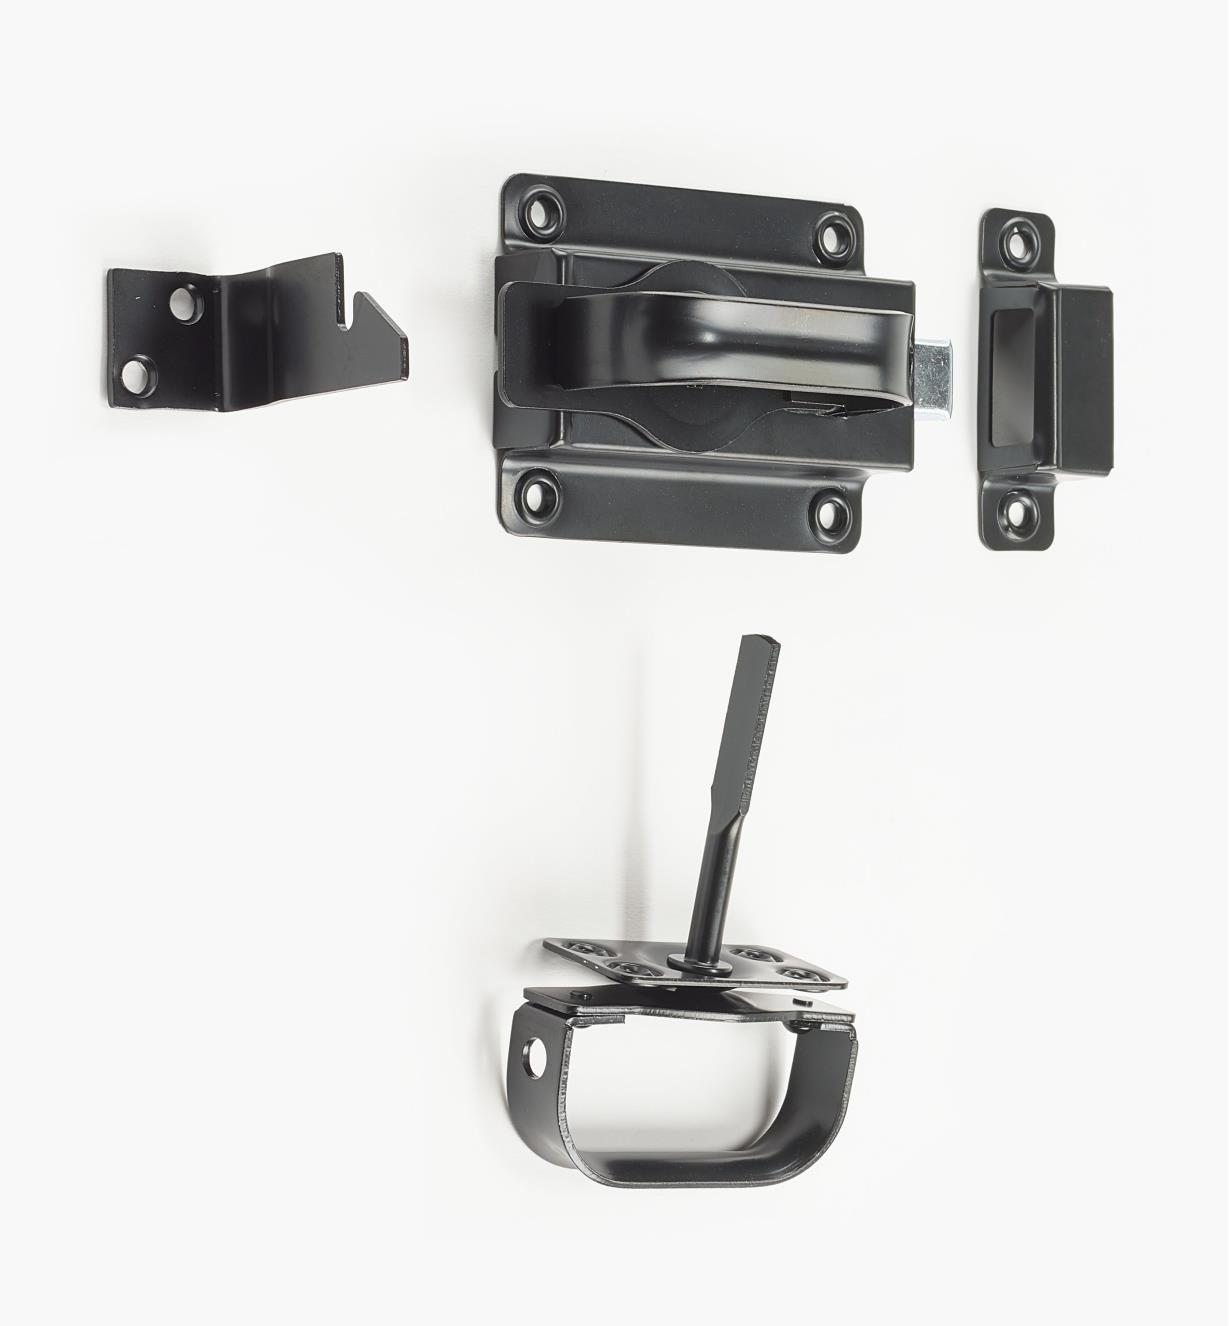 01S1020 - Gate Turn Handle Latch